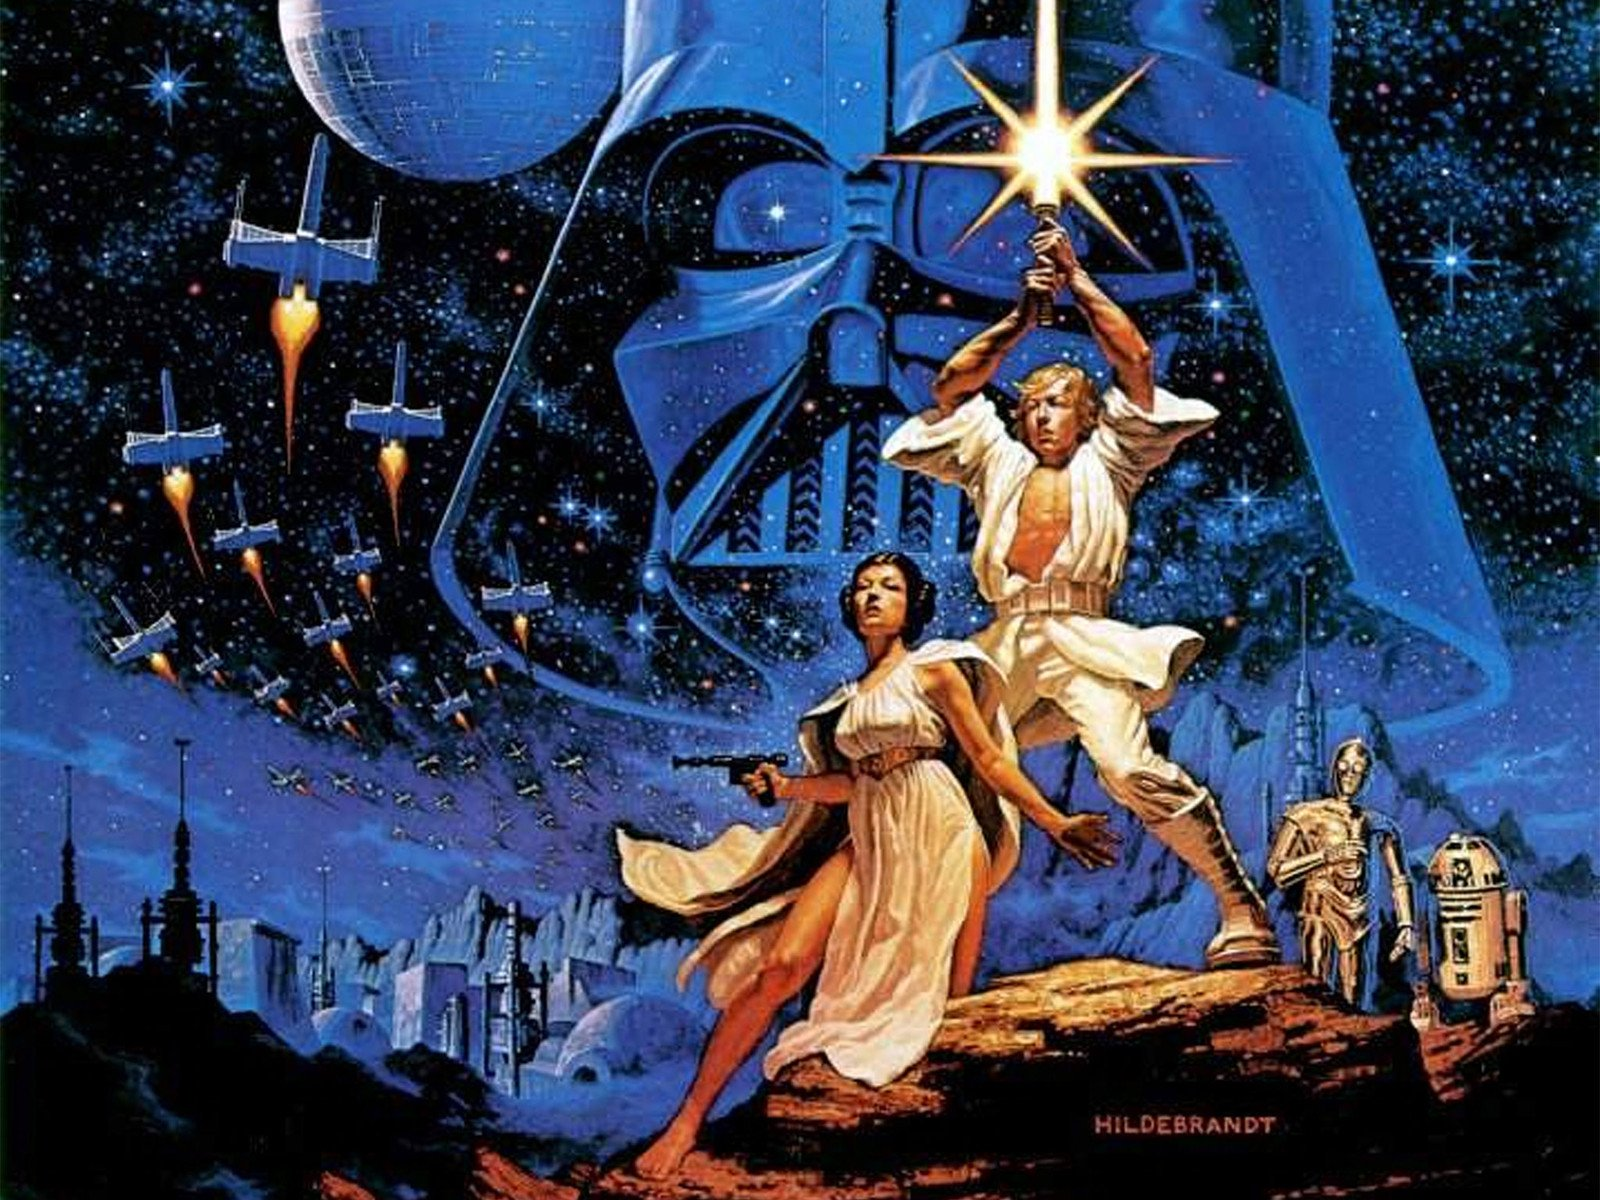 Review 1: The Future of Star Wars